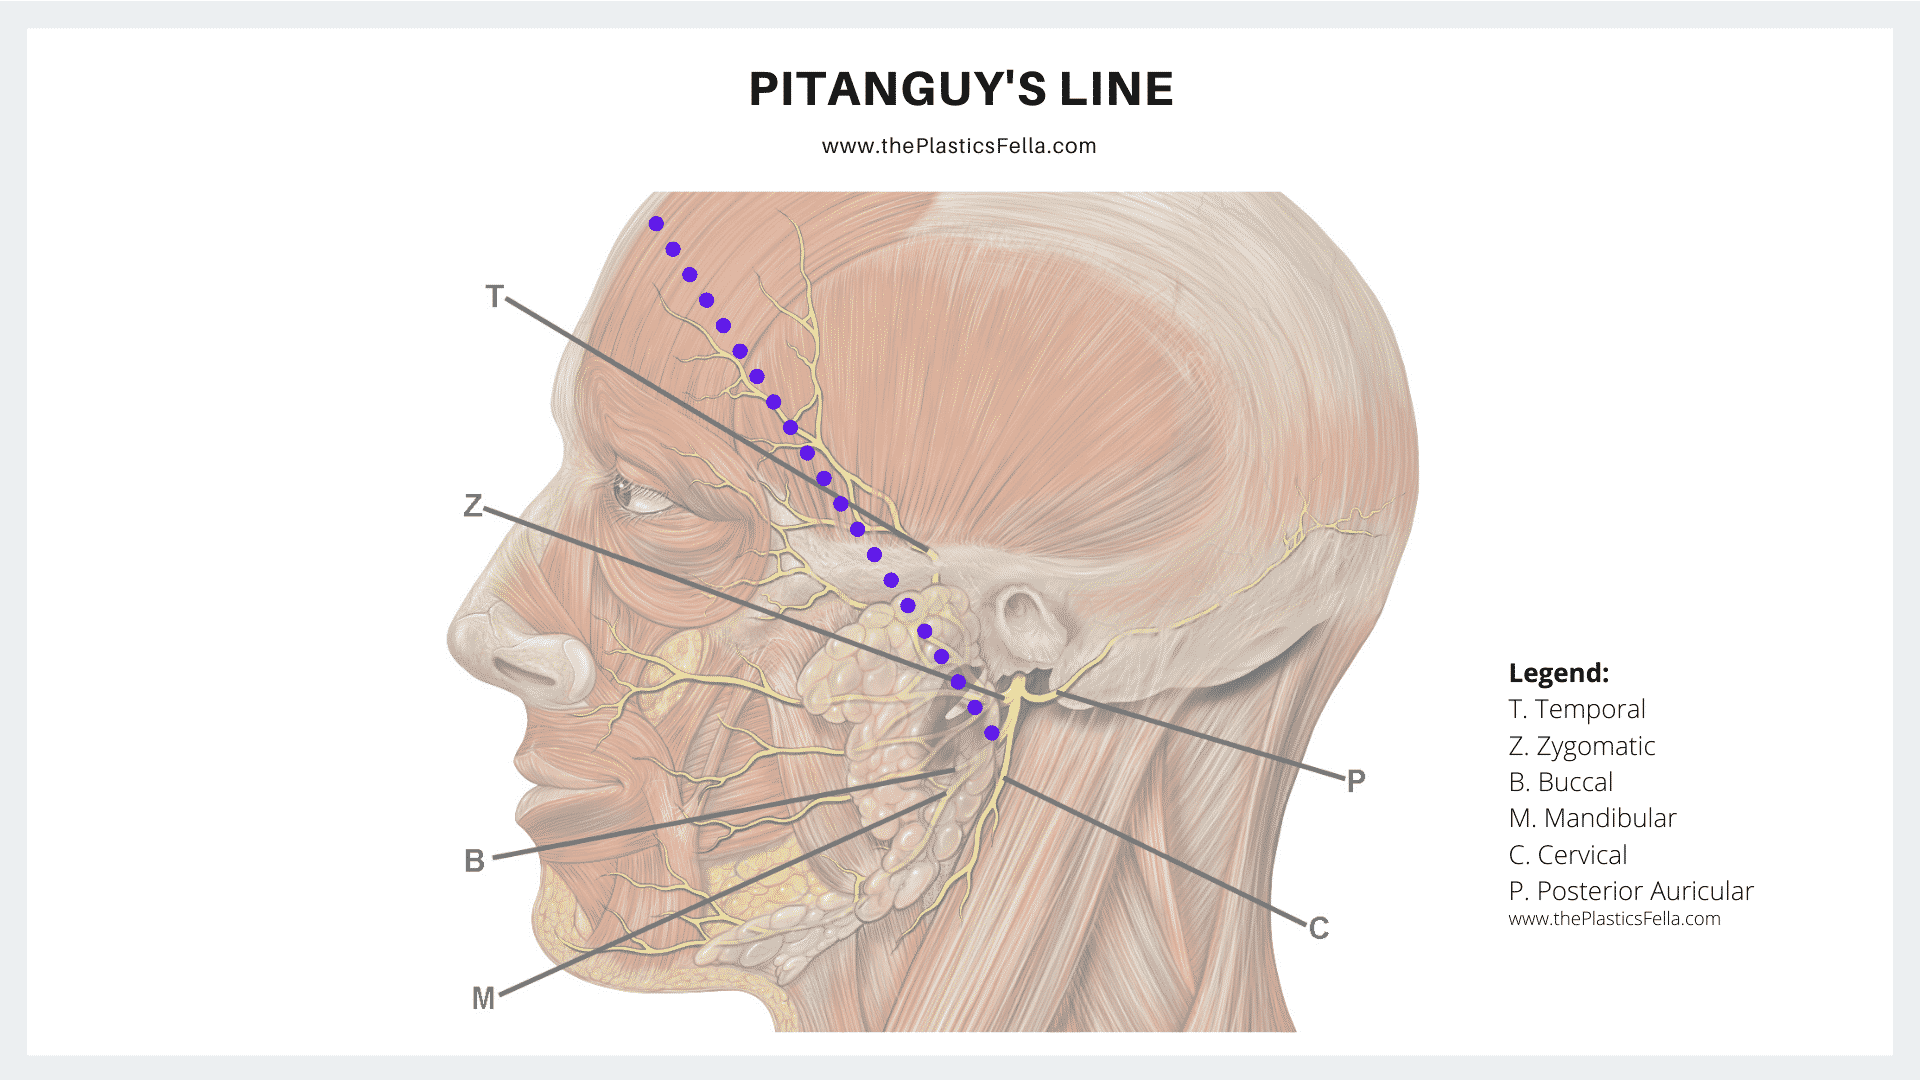 Location of Pitanguy's Line of the Facial Nerve